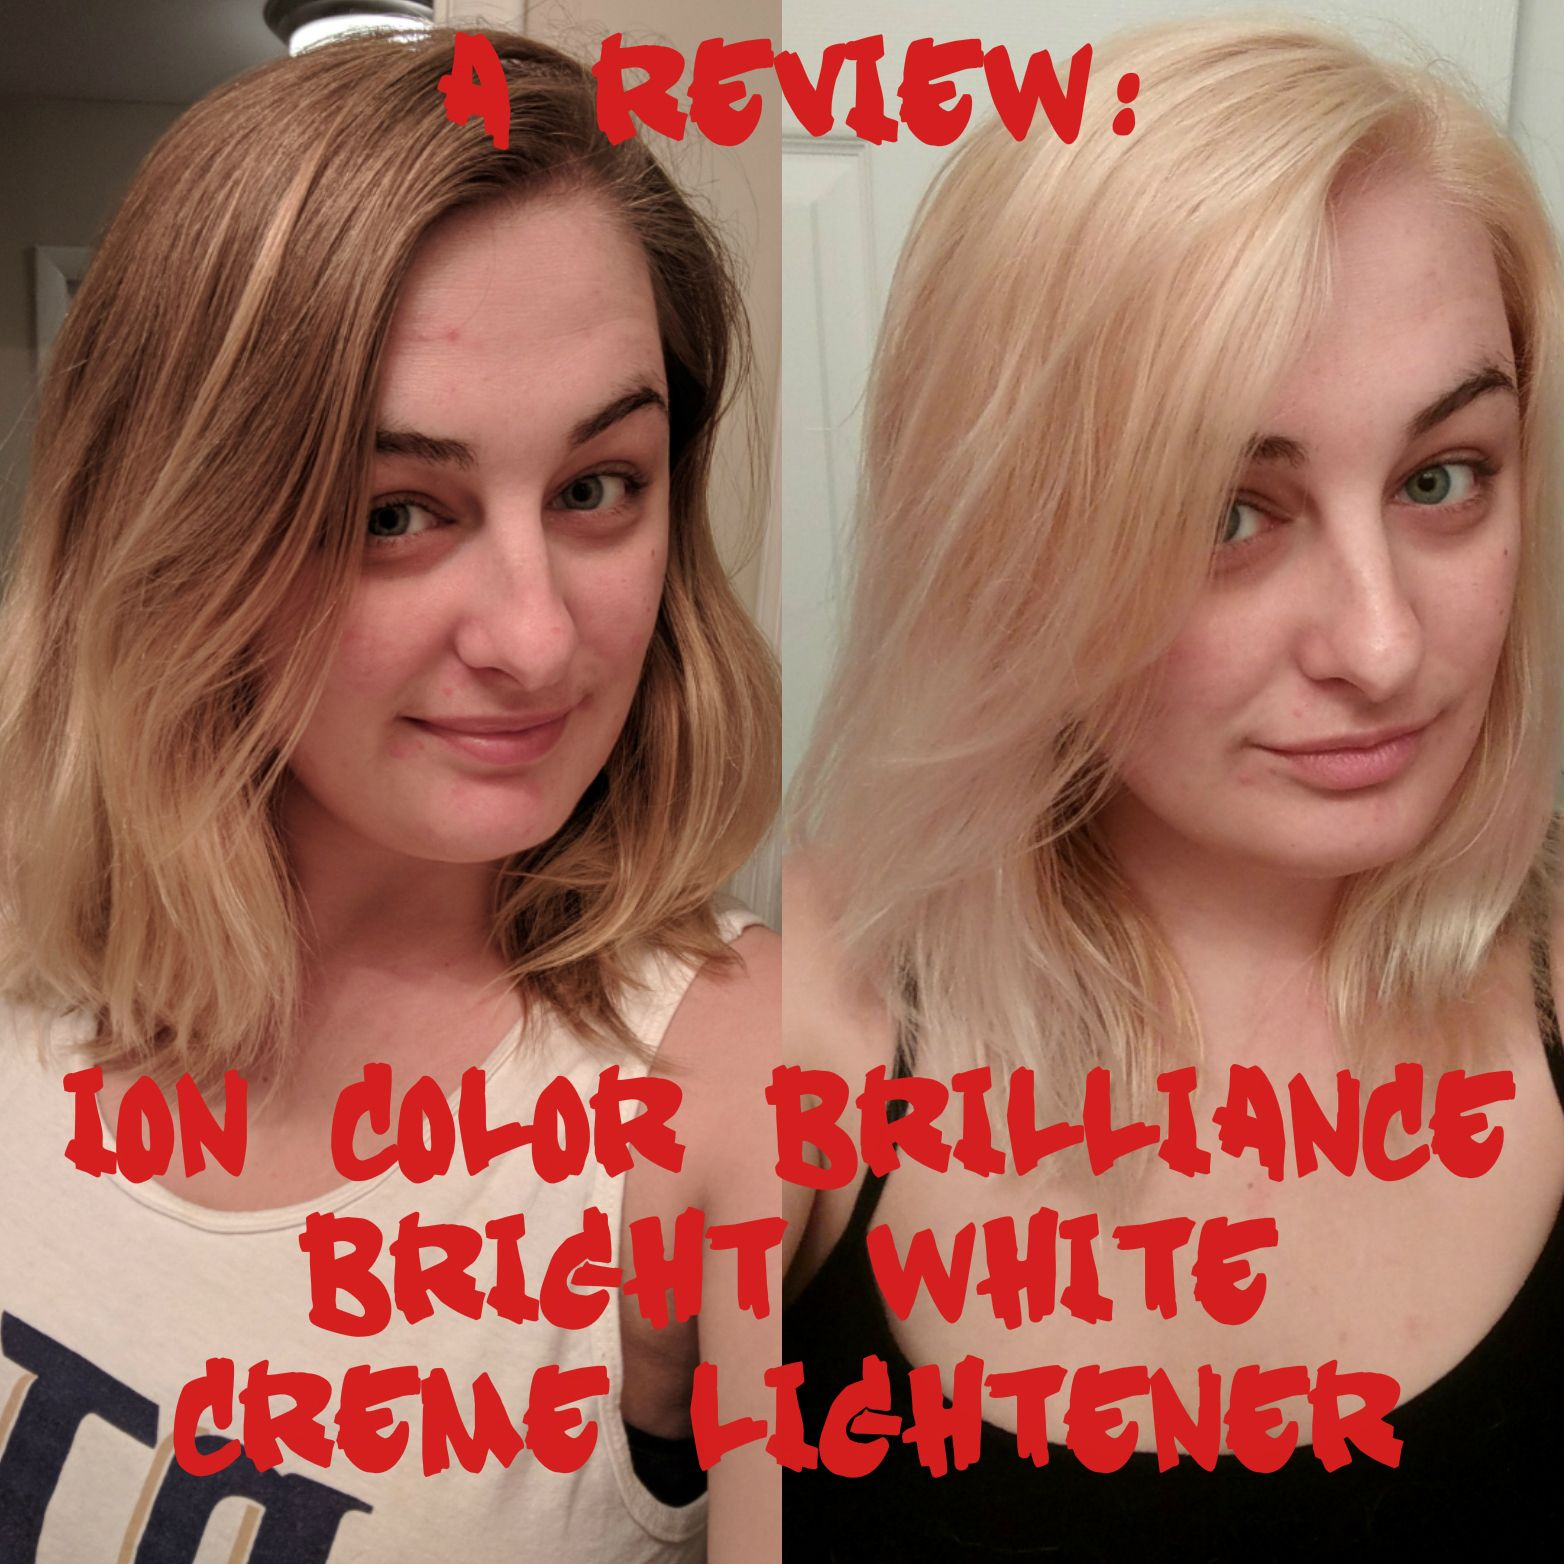 How To Use Ion Color Brilliance Bright White Creme Lightener To Lighten Your Hair A Review Ion Color Brilliance Ion Color Brilliance Brights Ion Hair Colors